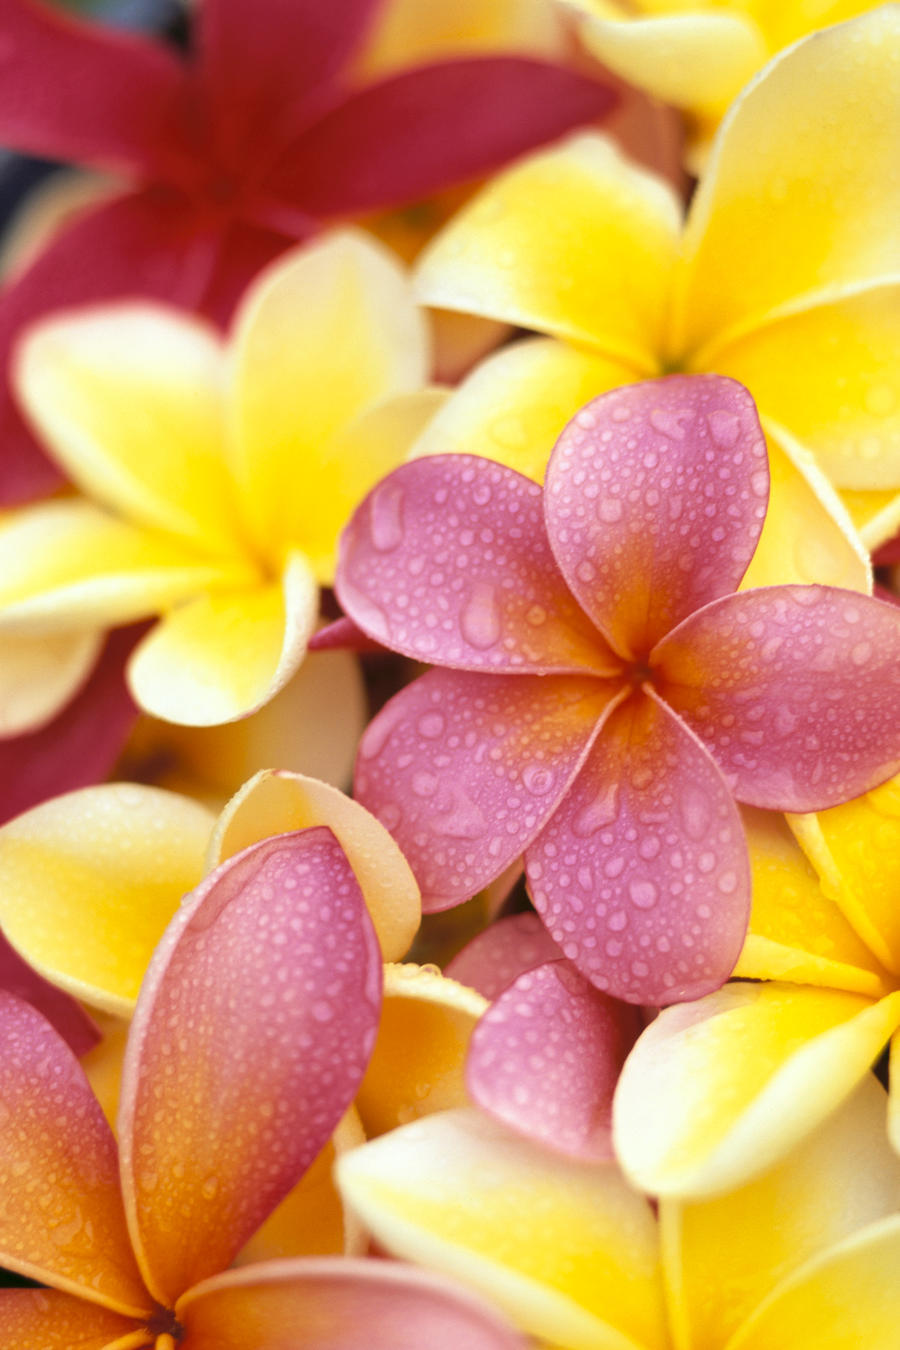 Studio Shot Of Yellow And Two Pink Plumeria Flowers, Water Drops On Petals  Print